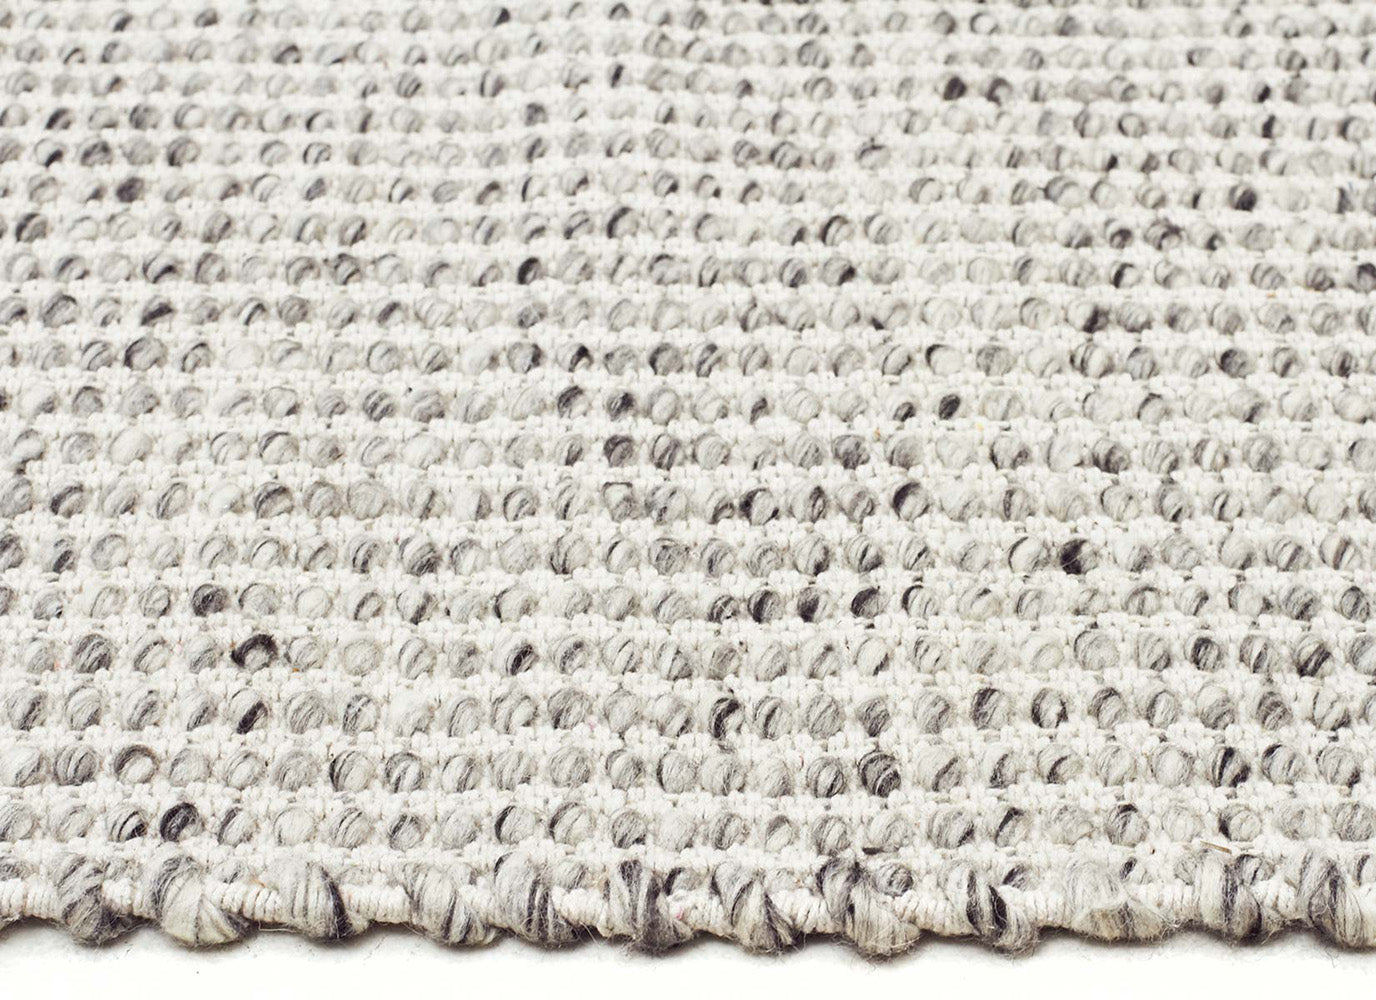 carina white wool rugtastic oskar woven felted rugs products rug